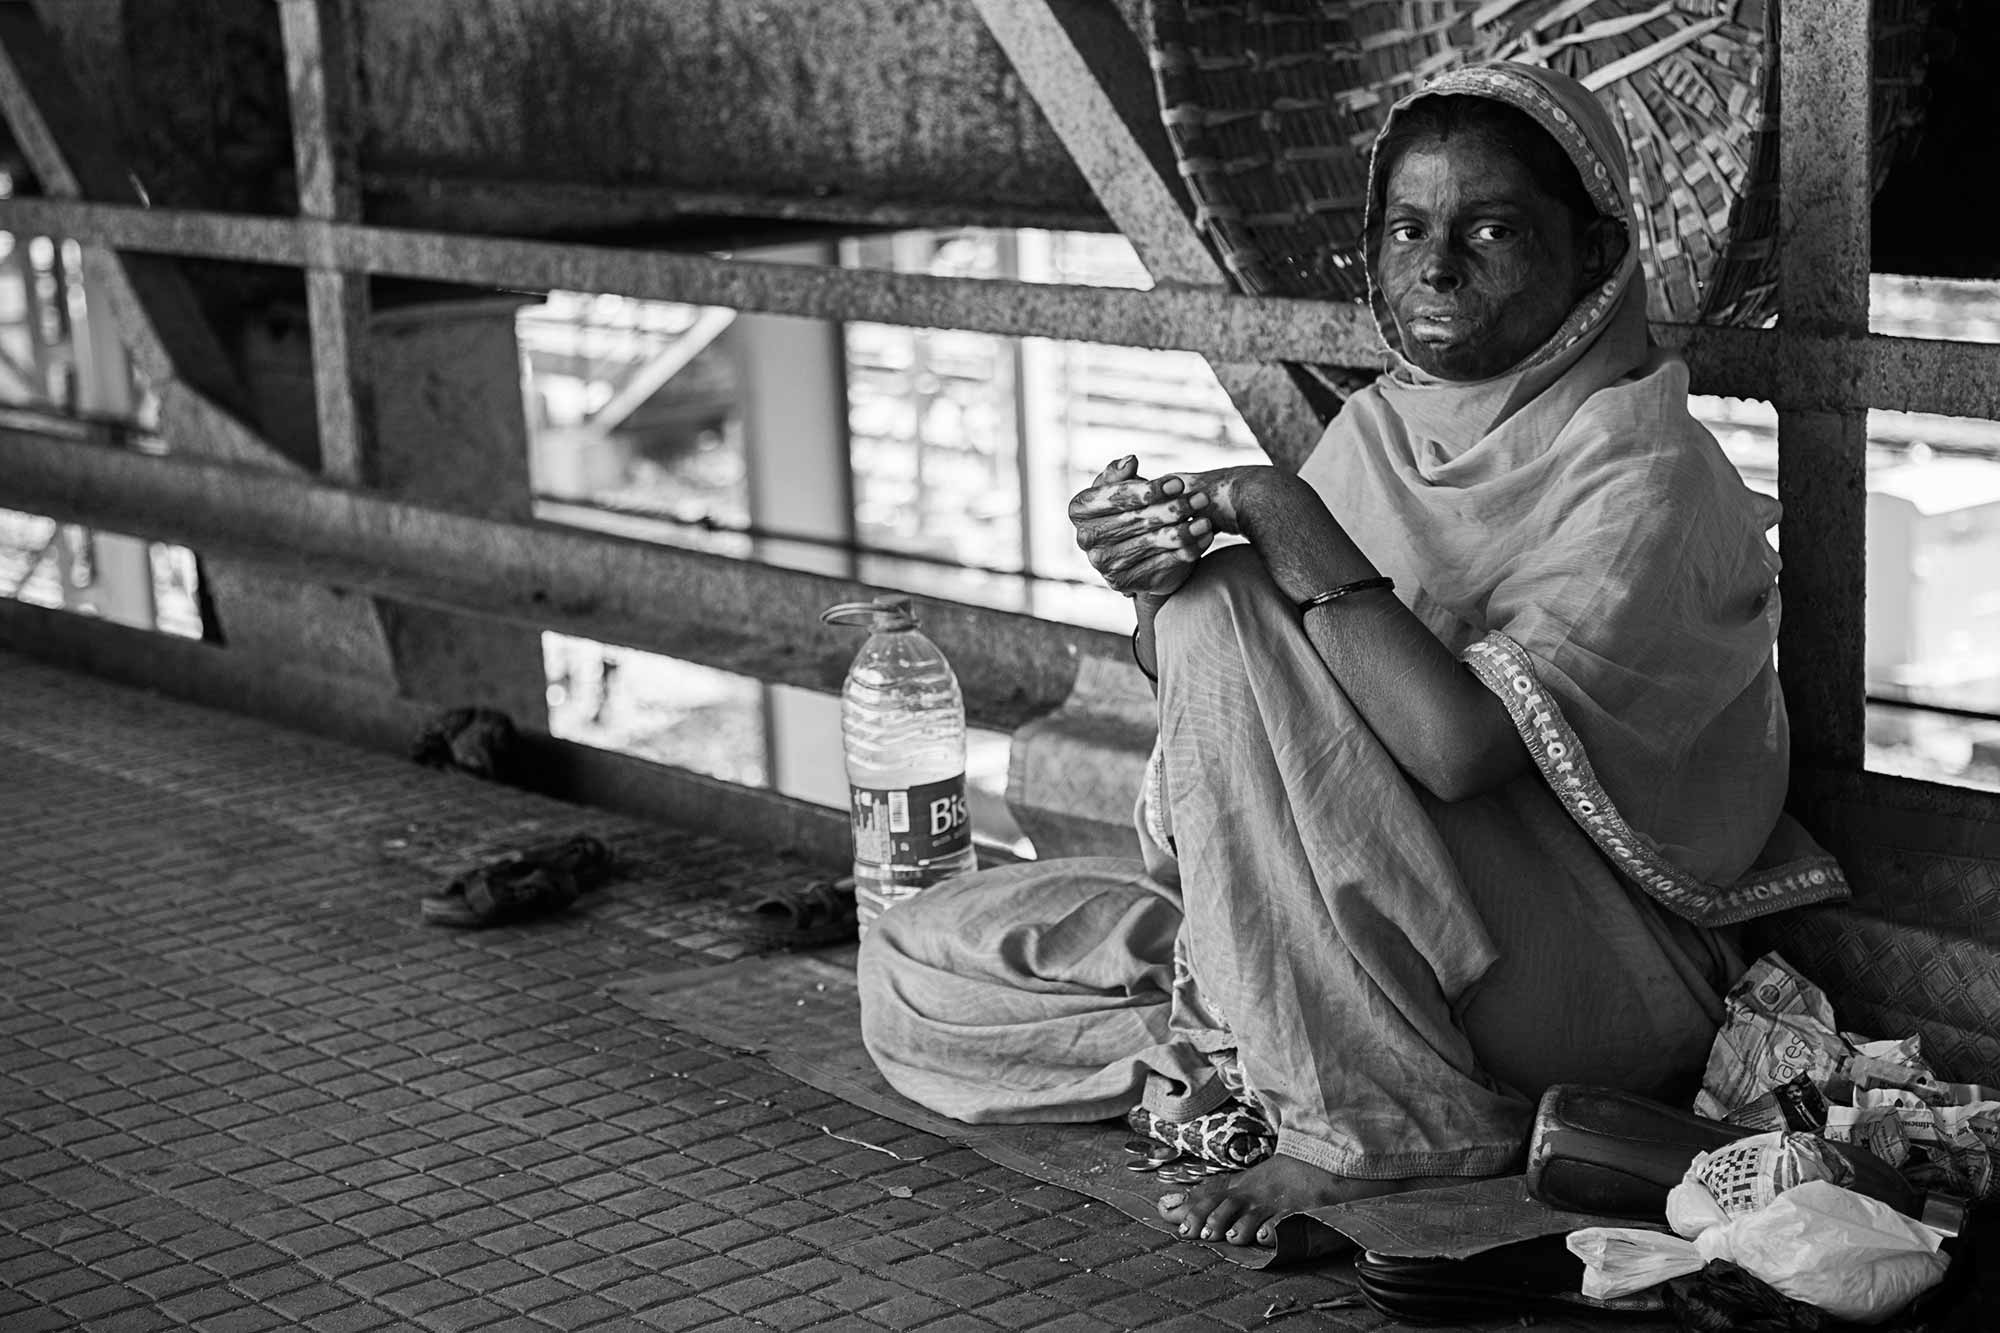 acid-victim-woman-streets-mumbai-india